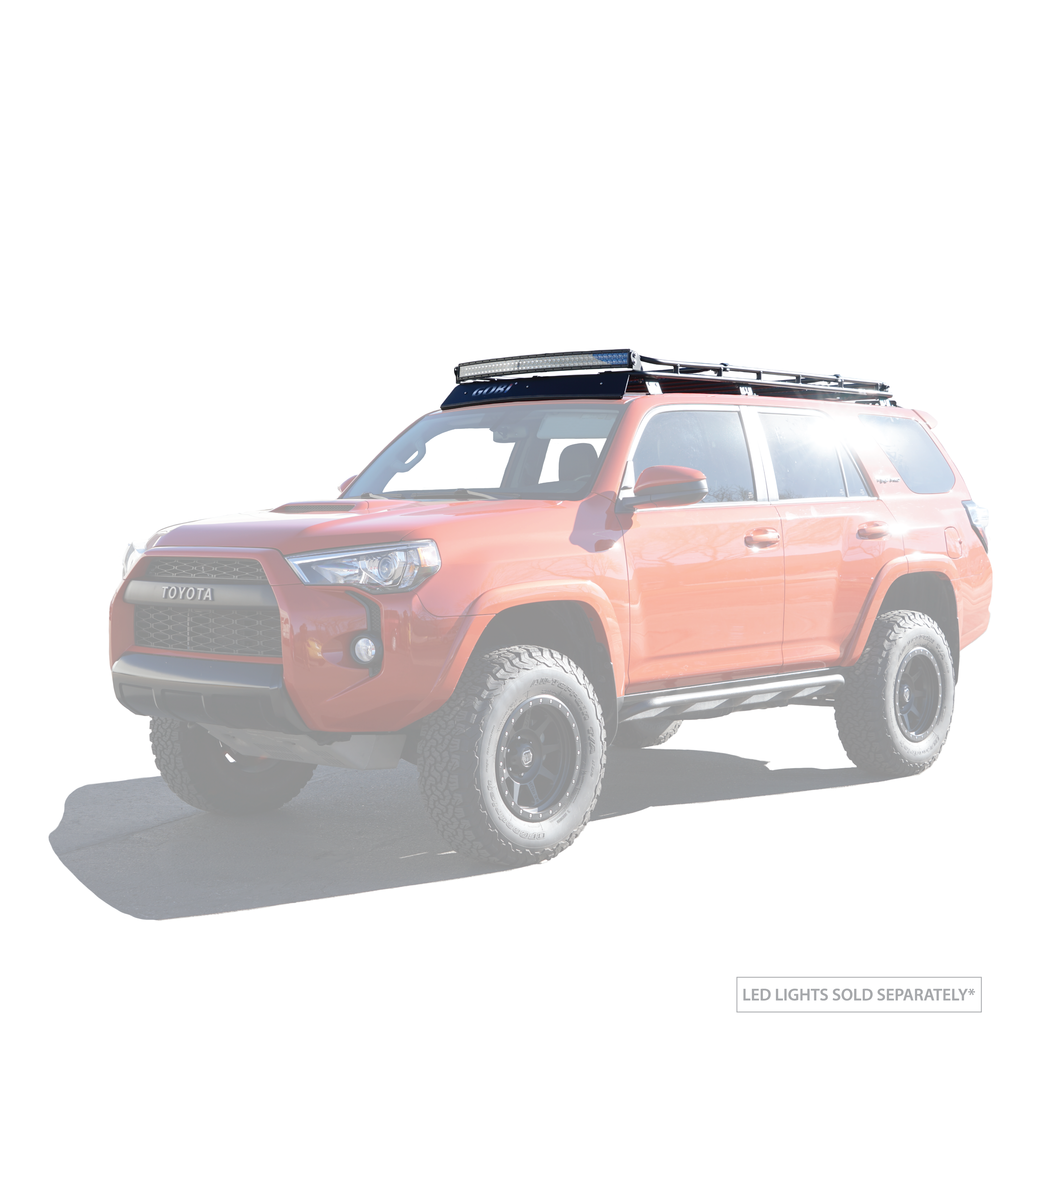 Gobi - Stealth Rack - Light Bar Set Up - No SunRoof -Toyota 4Runner 5th Gen 2010-2021 - 4x4 Runners